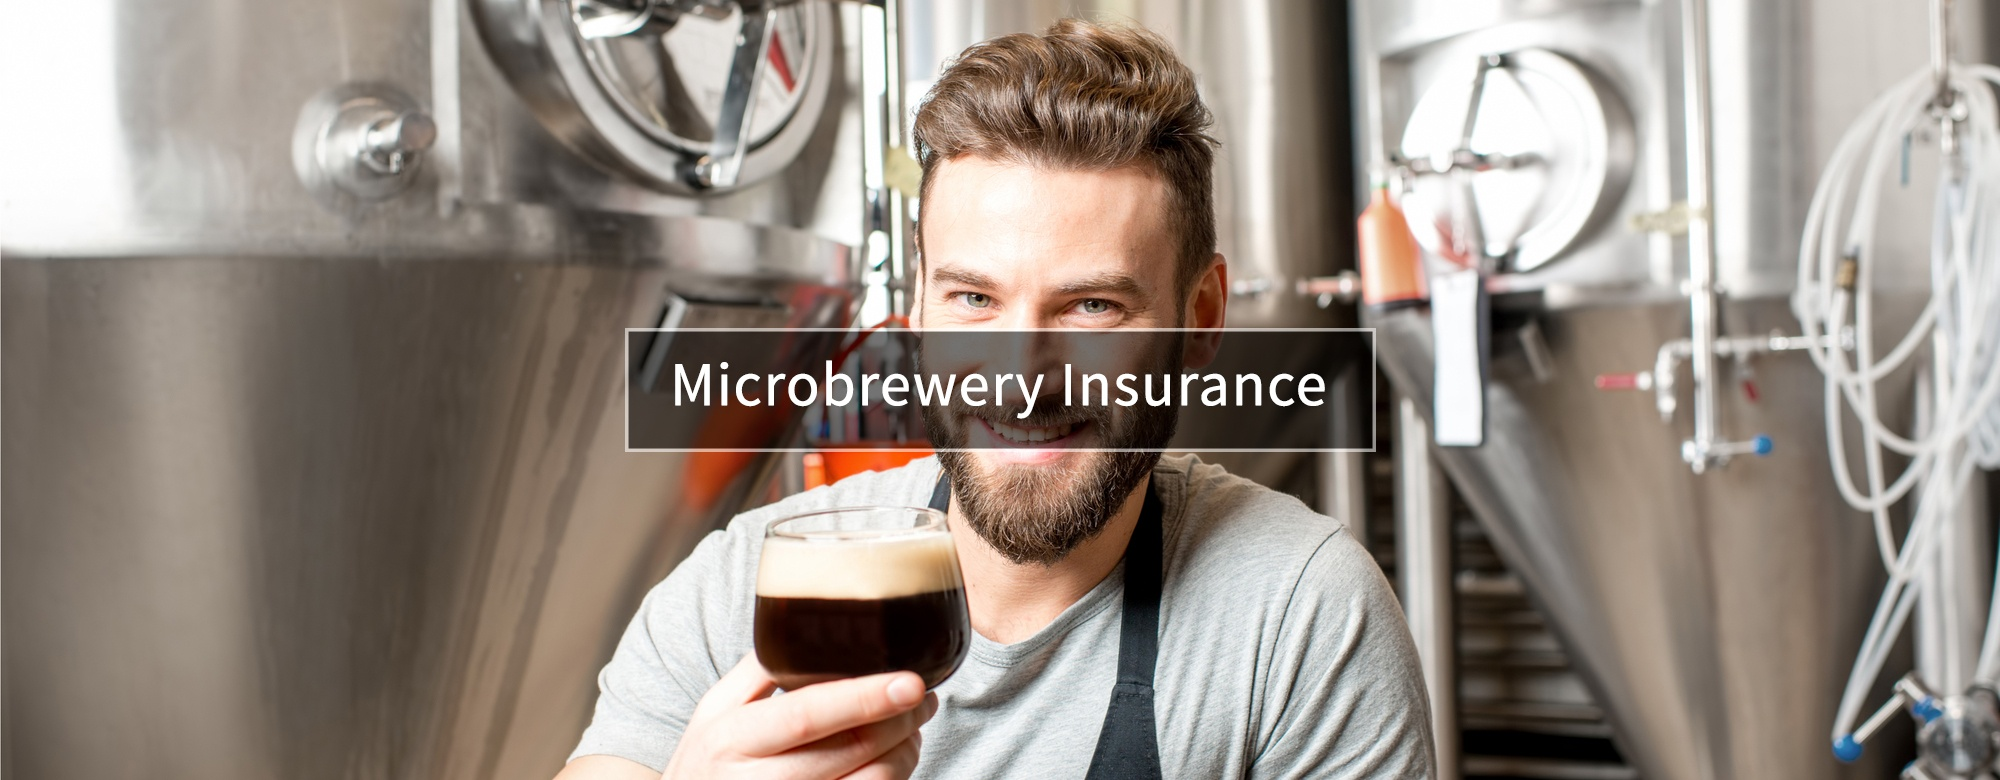 Microbrewery Insurance Massachusetts